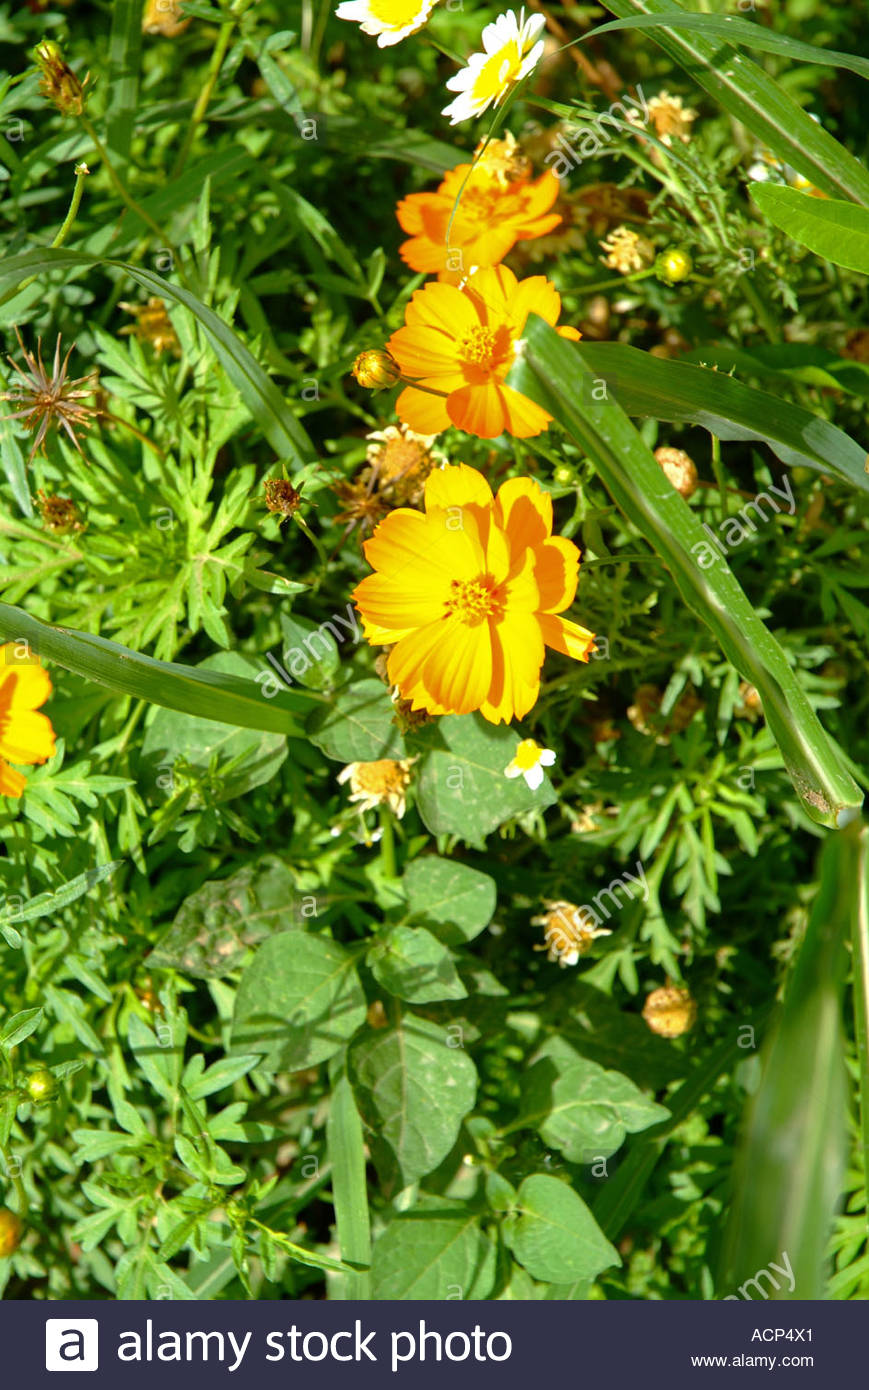 Colourful Orange White And Yellow Flowers In Flower Border On This